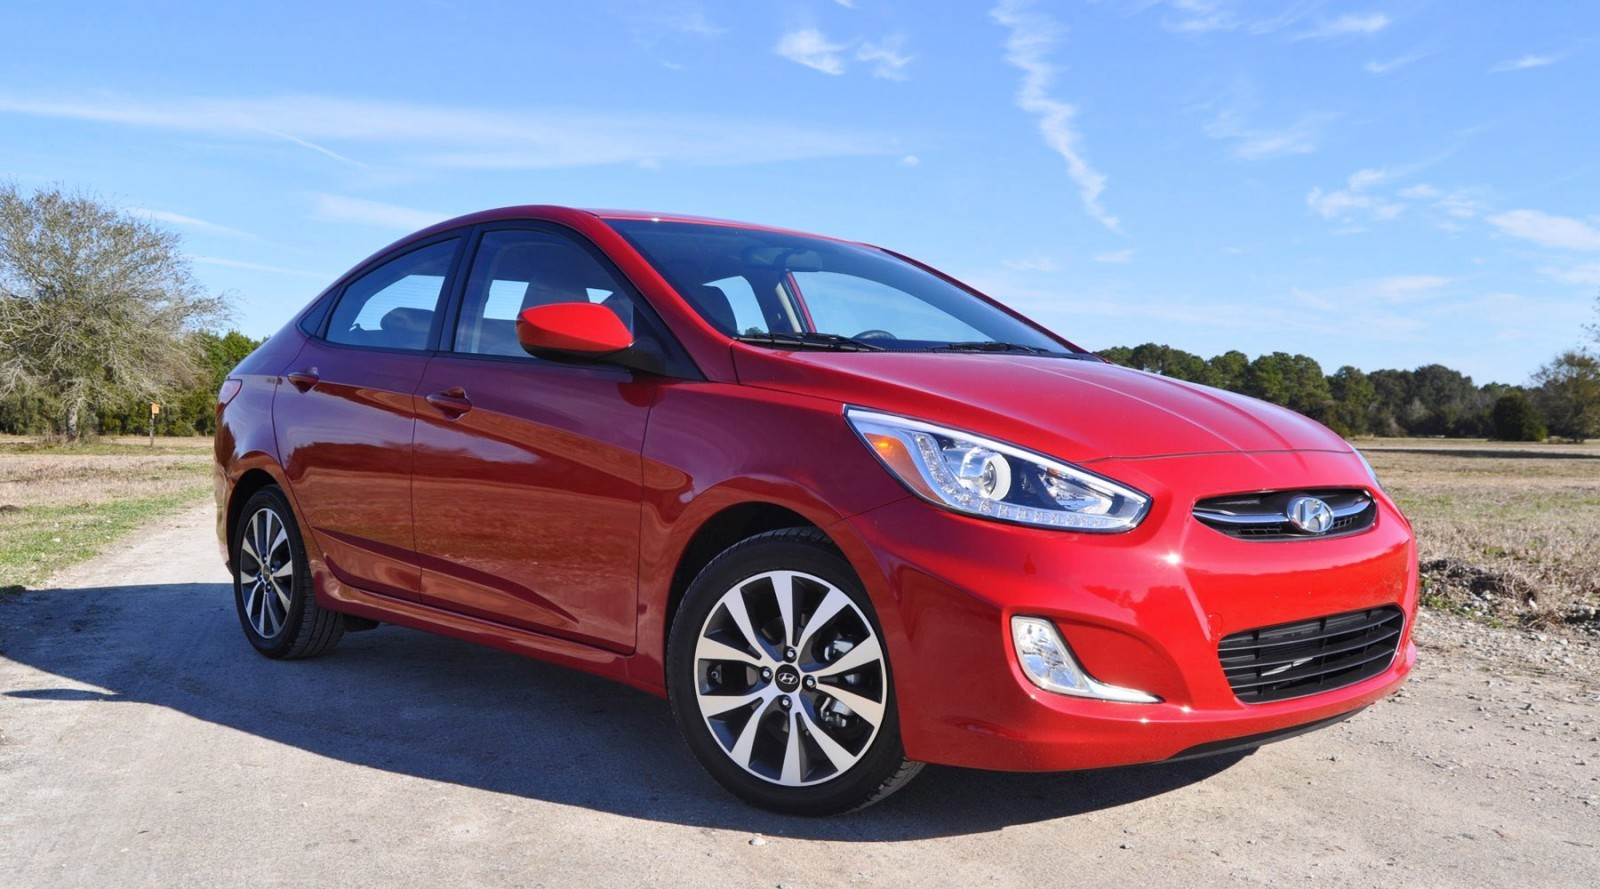 2015 hyundai accent gls sedan review. Black Bedroom Furniture Sets. Home Design Ideas